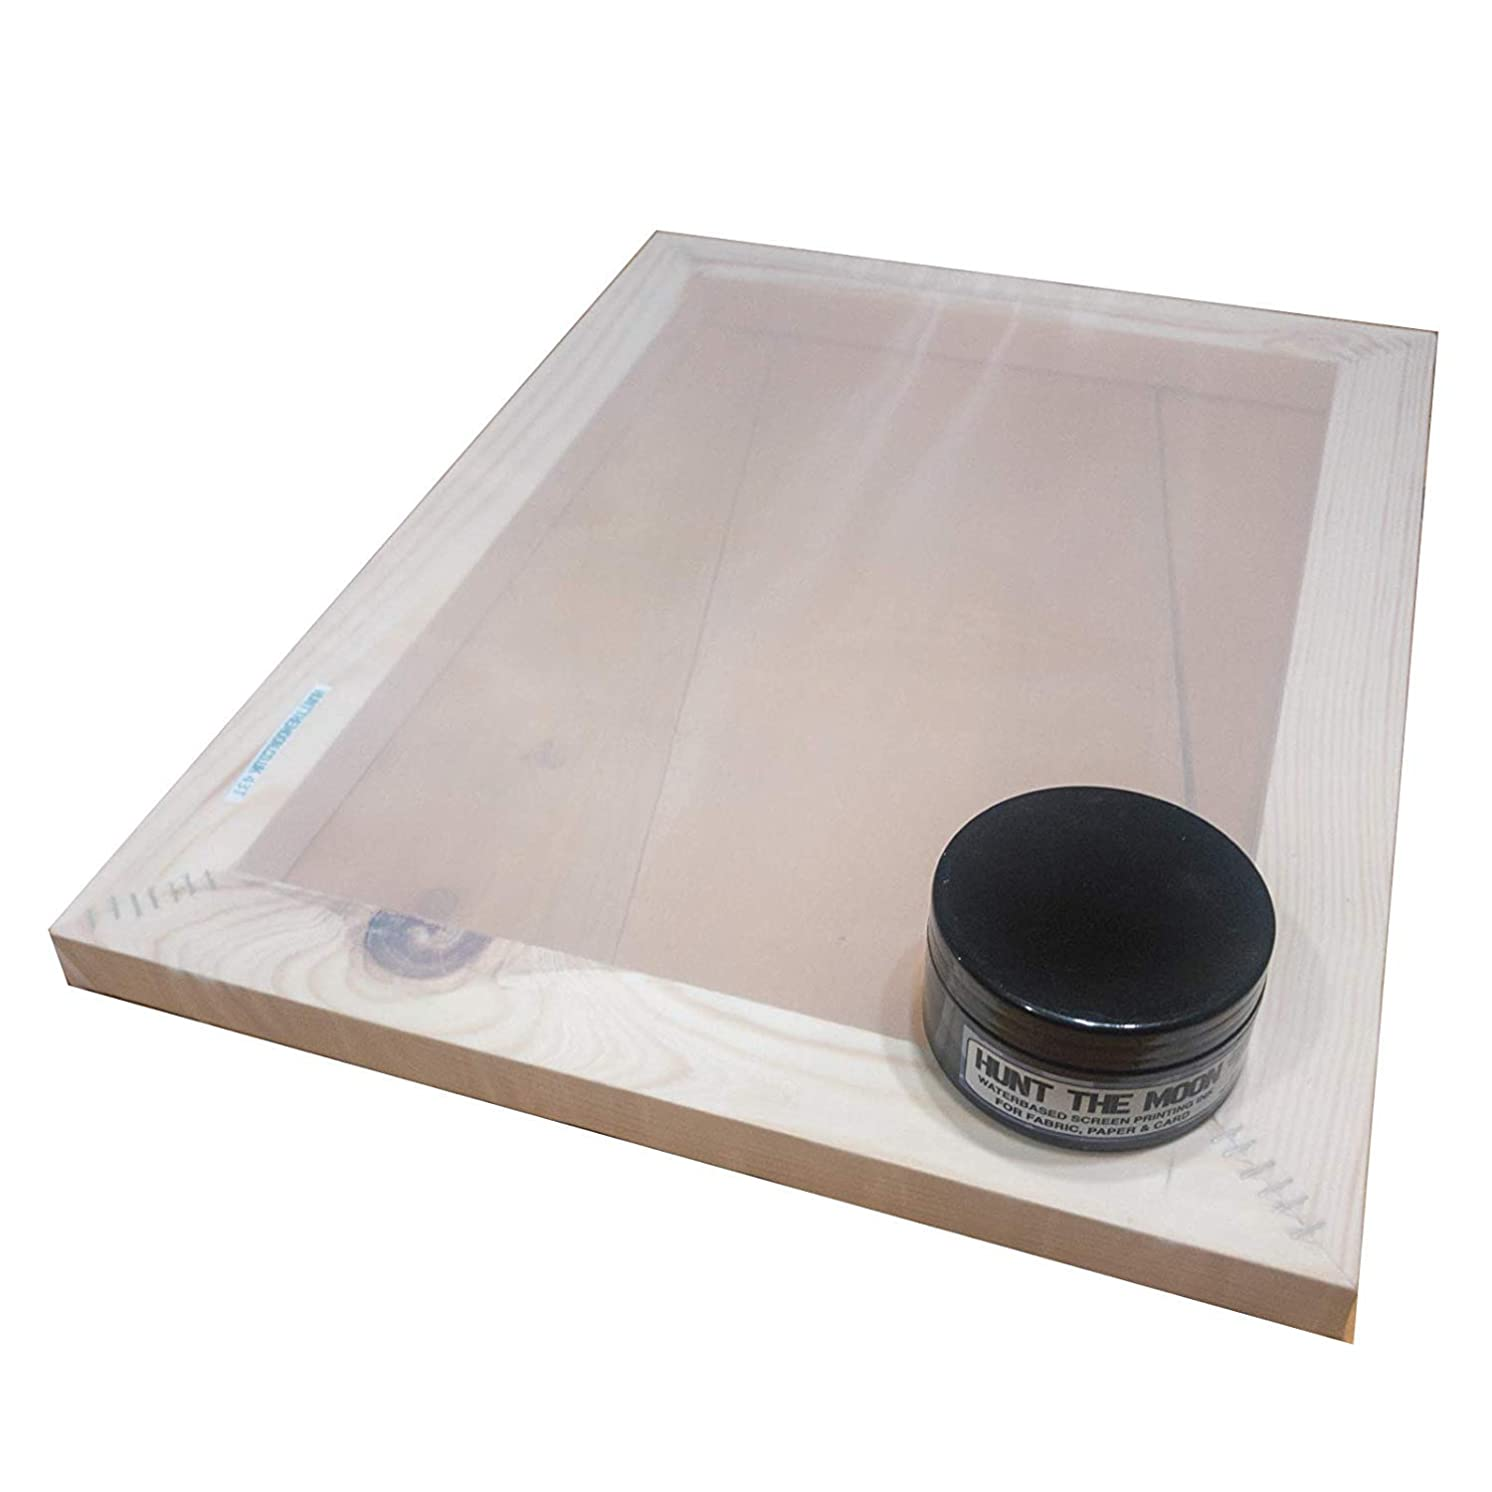 Hunt The Moon Screen Printing Frame and Ink Kit, Wooden, Medium A4 120t